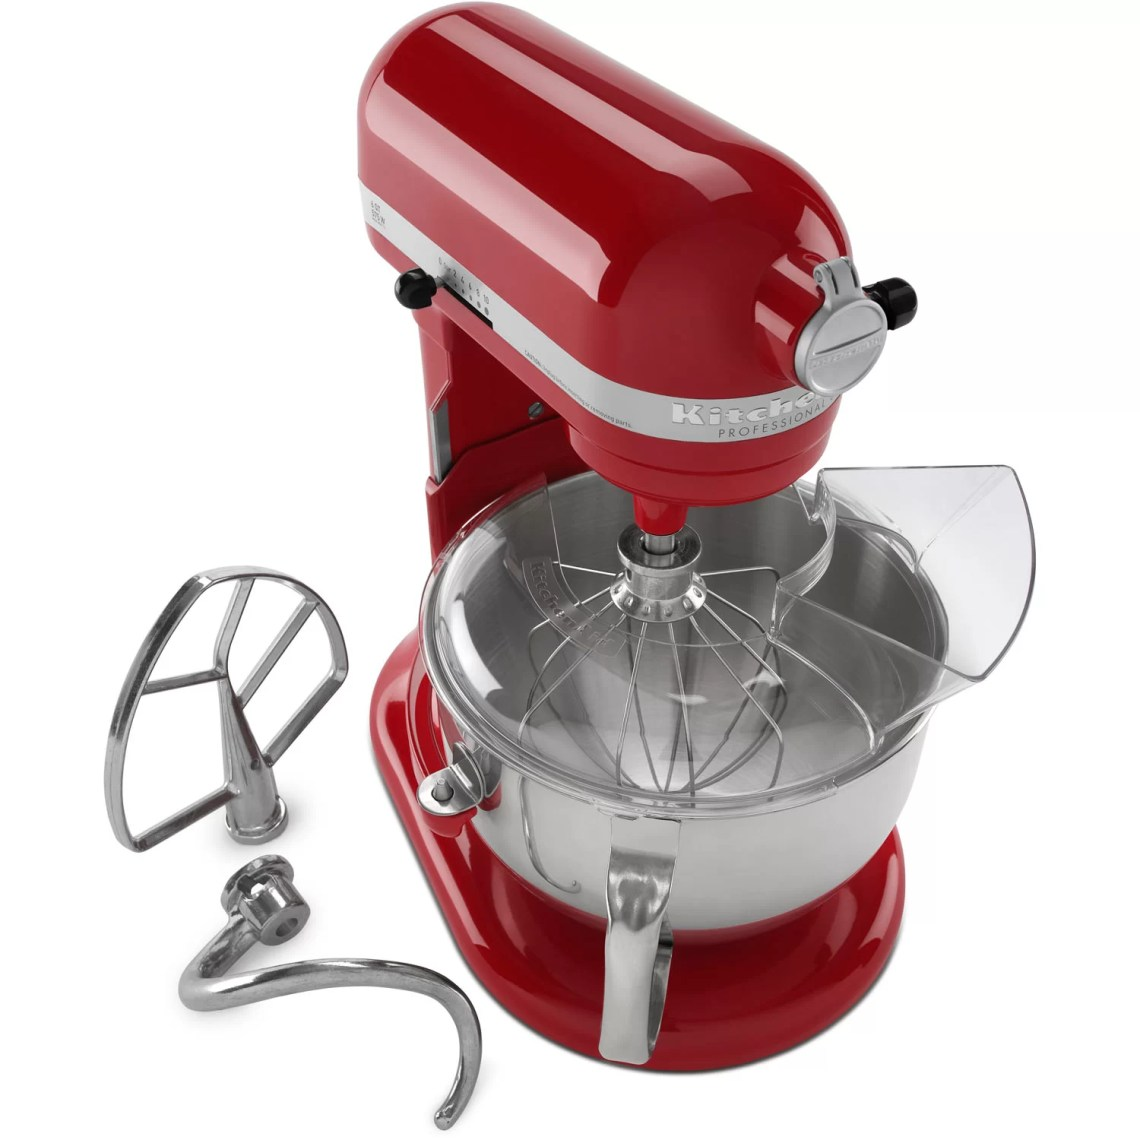 Image Result For Kitchenaid Qt Professional Stand Mixer Accessories